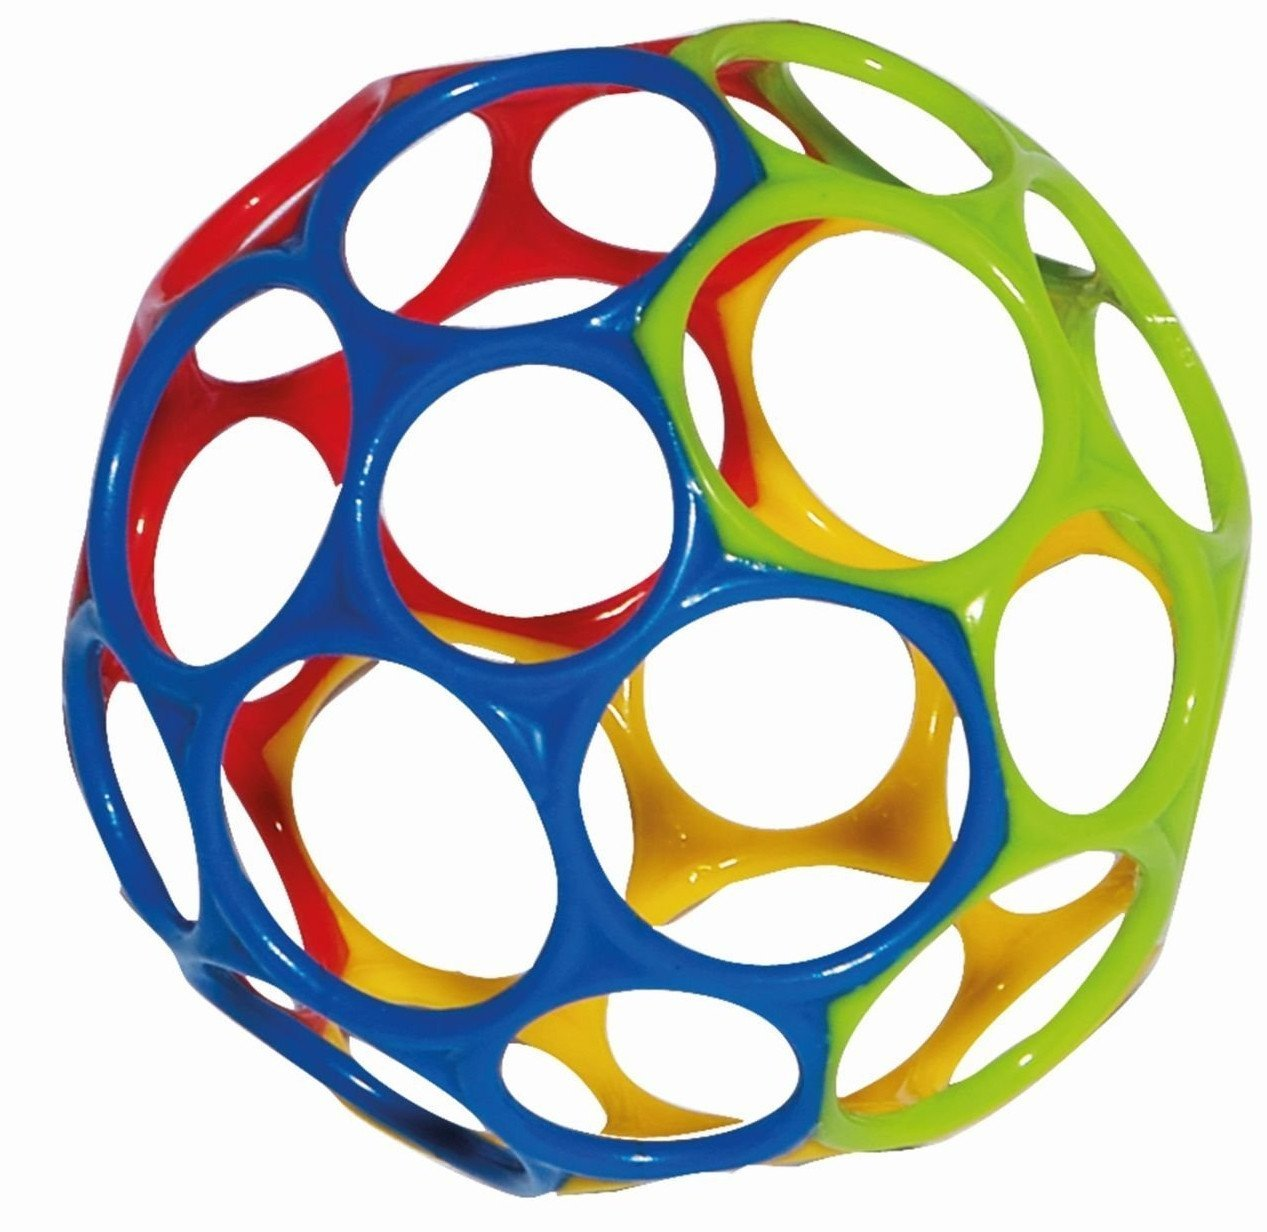 Rhino Toys Oball - Yellow/Blue/Red/Green